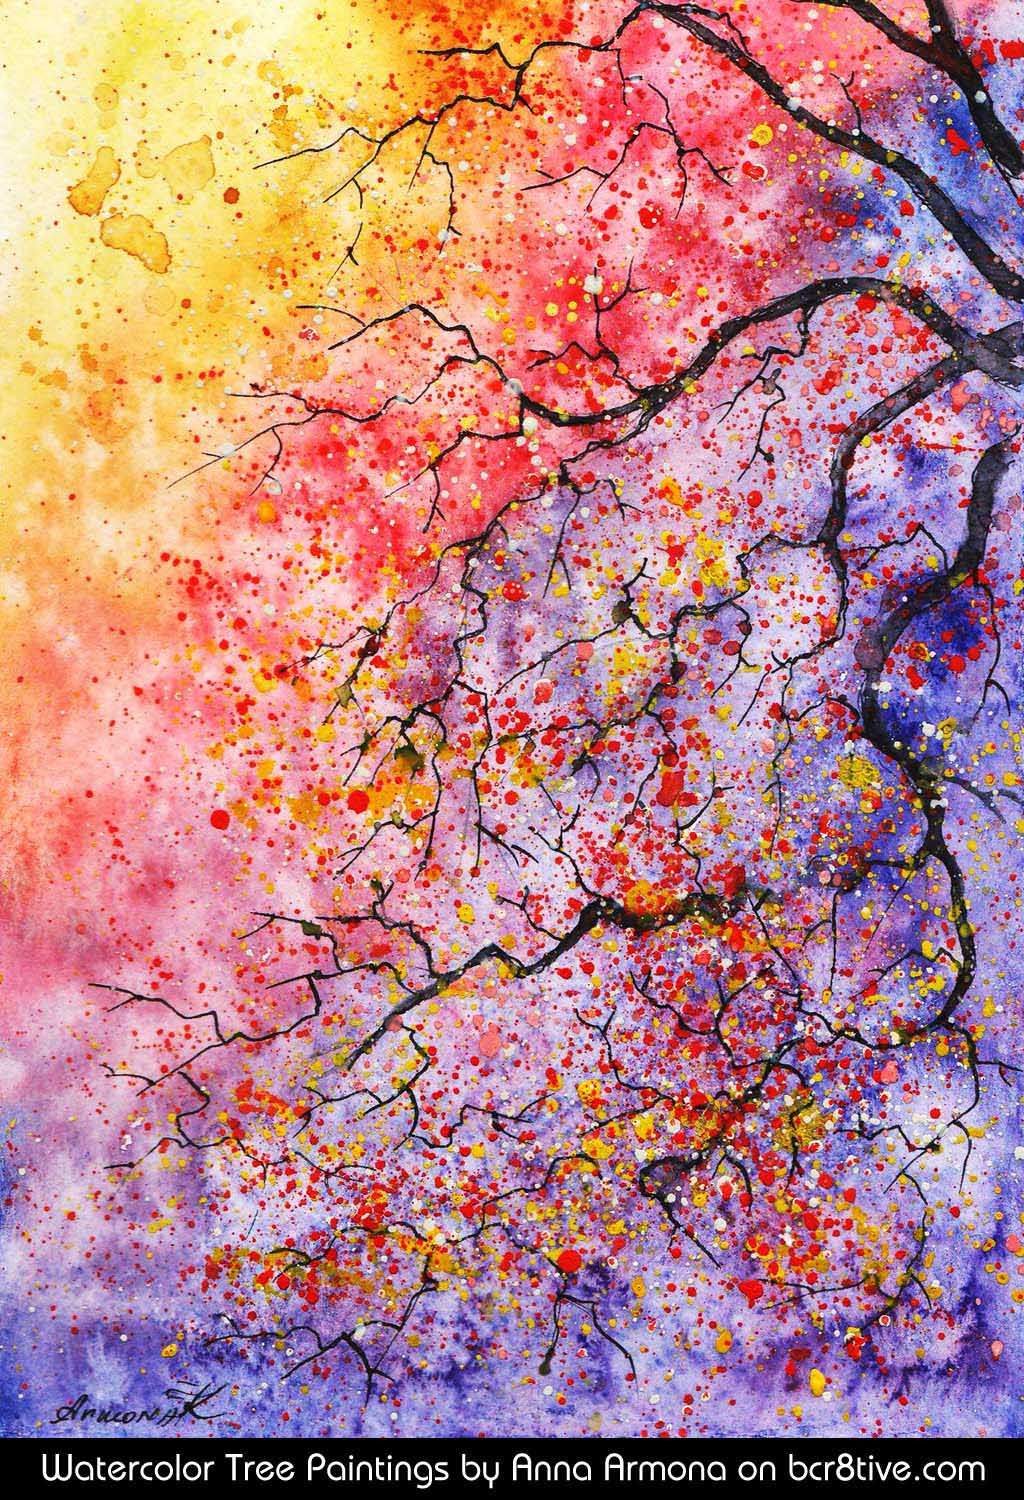 Anna Armona's Watercolor Trees